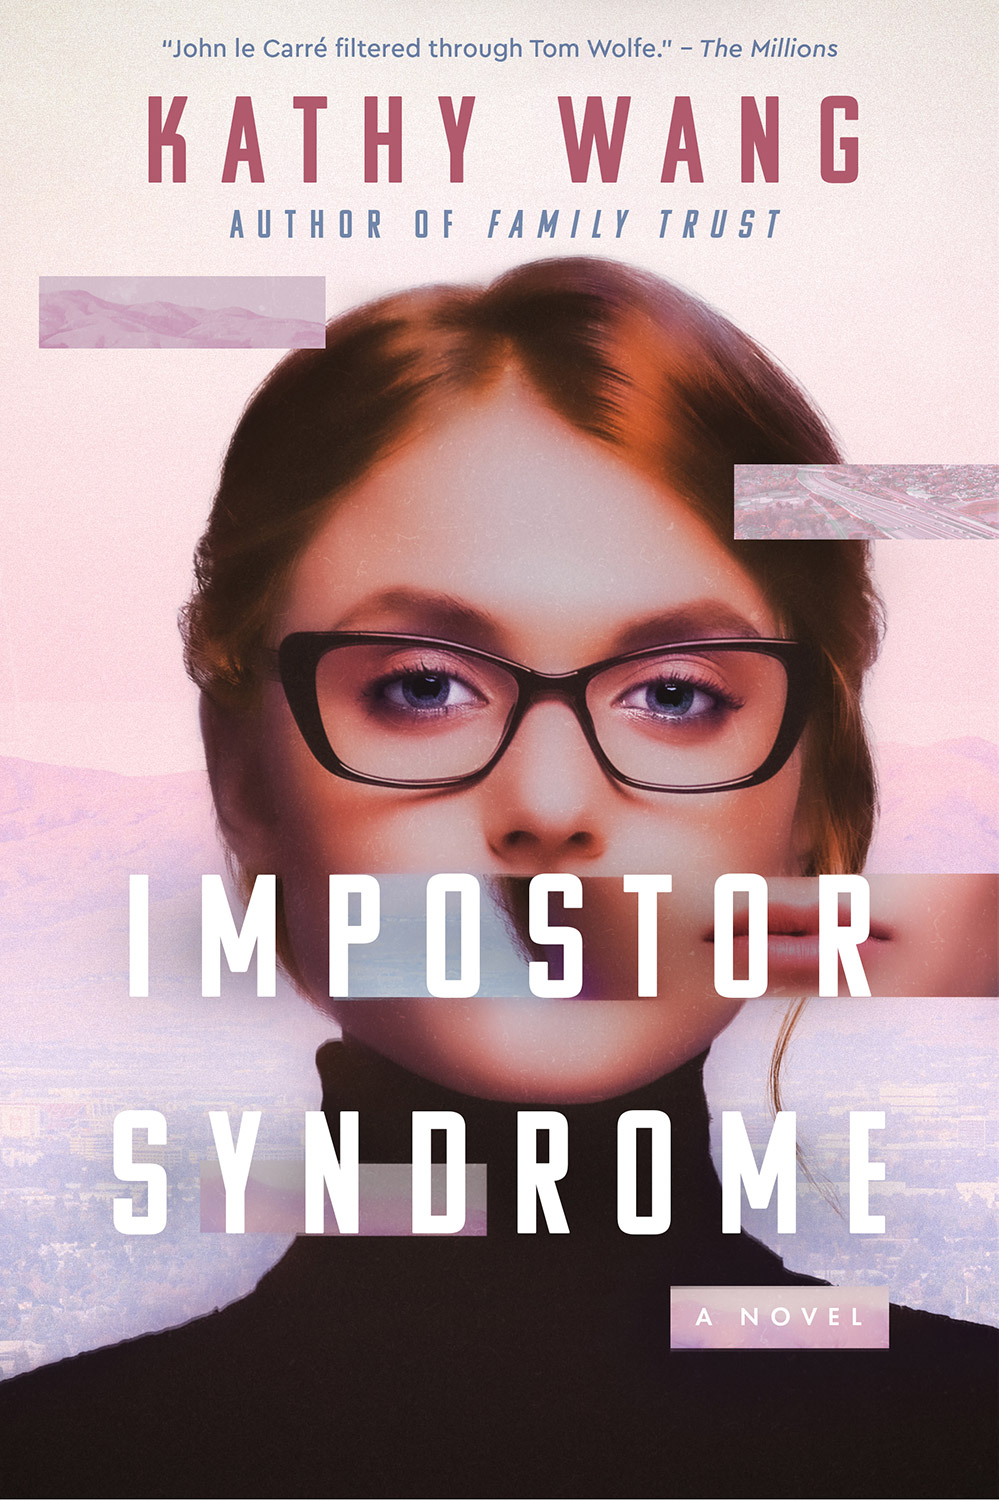 Imposter Syndrome, by Kathy Wang